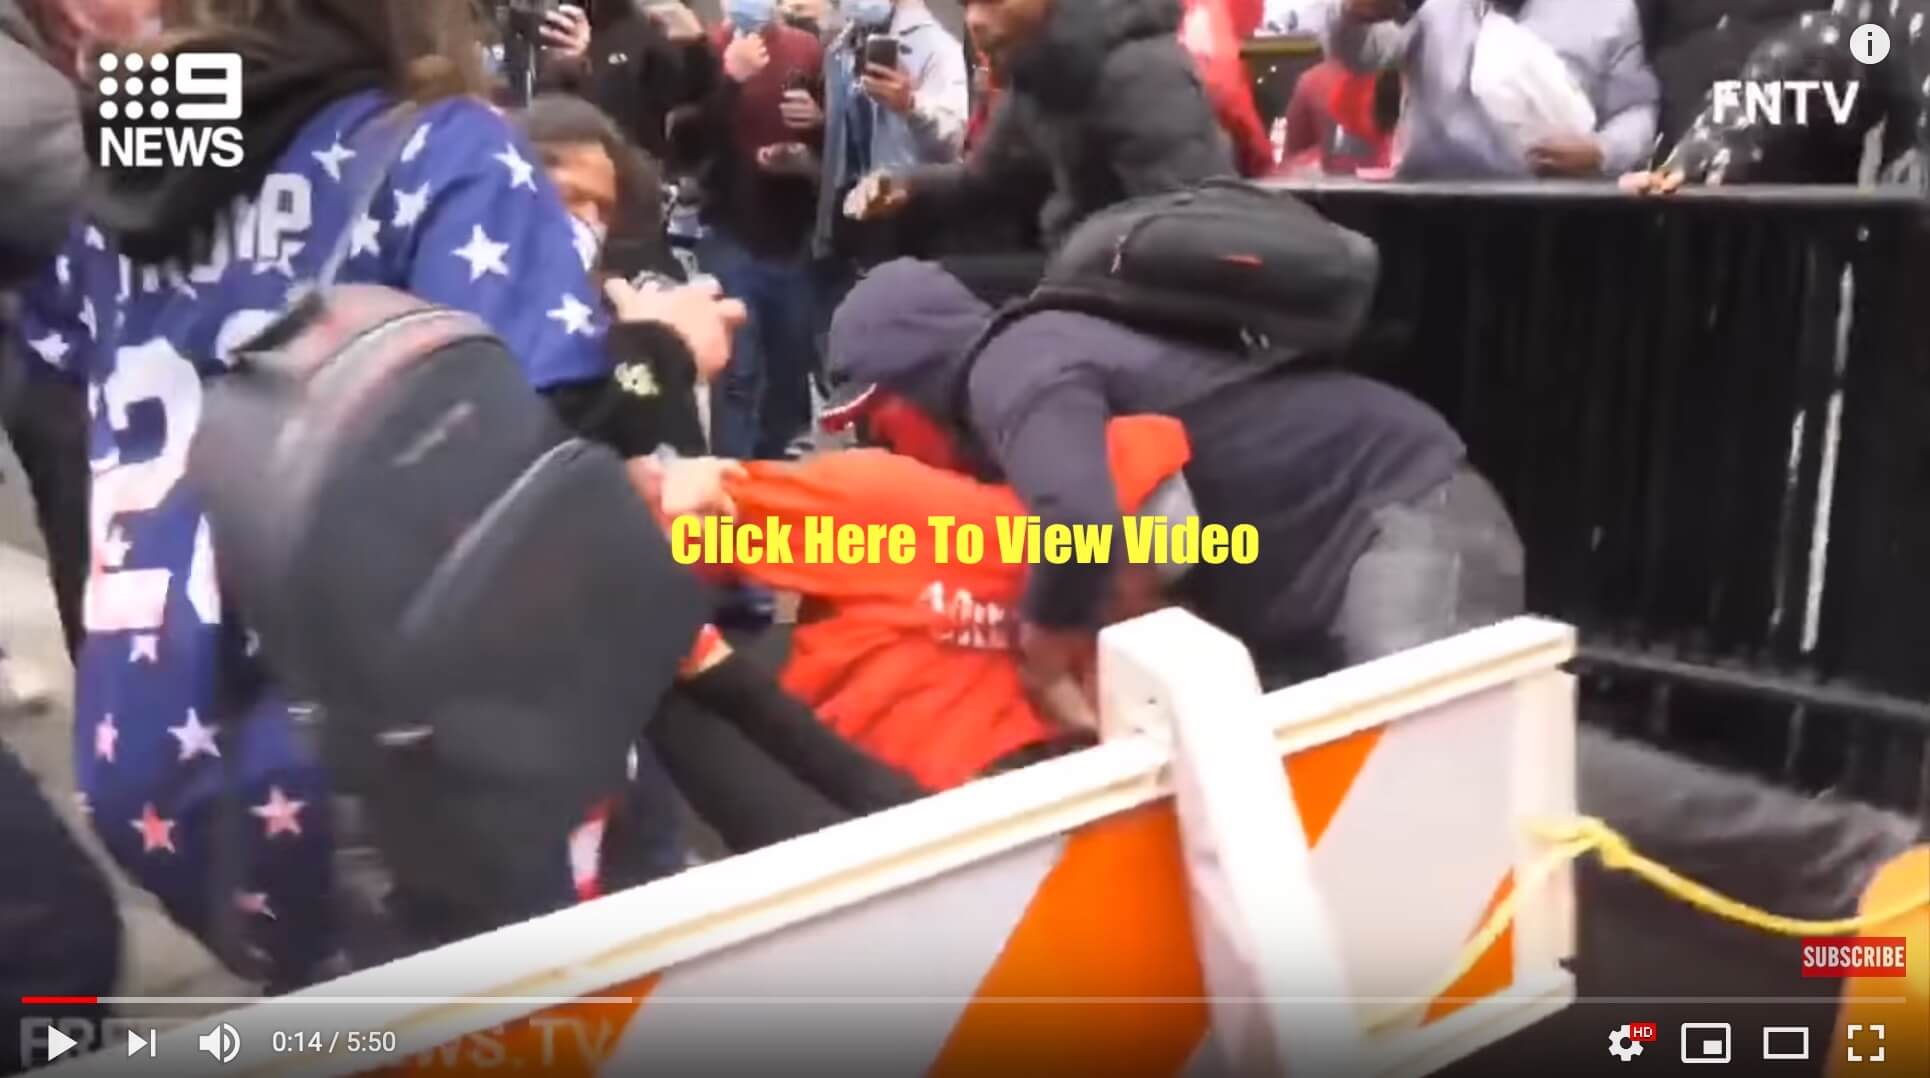 Video of Jews beaten by ANTIF, and BLM democrats beating jews in Manhattan Beach, New York